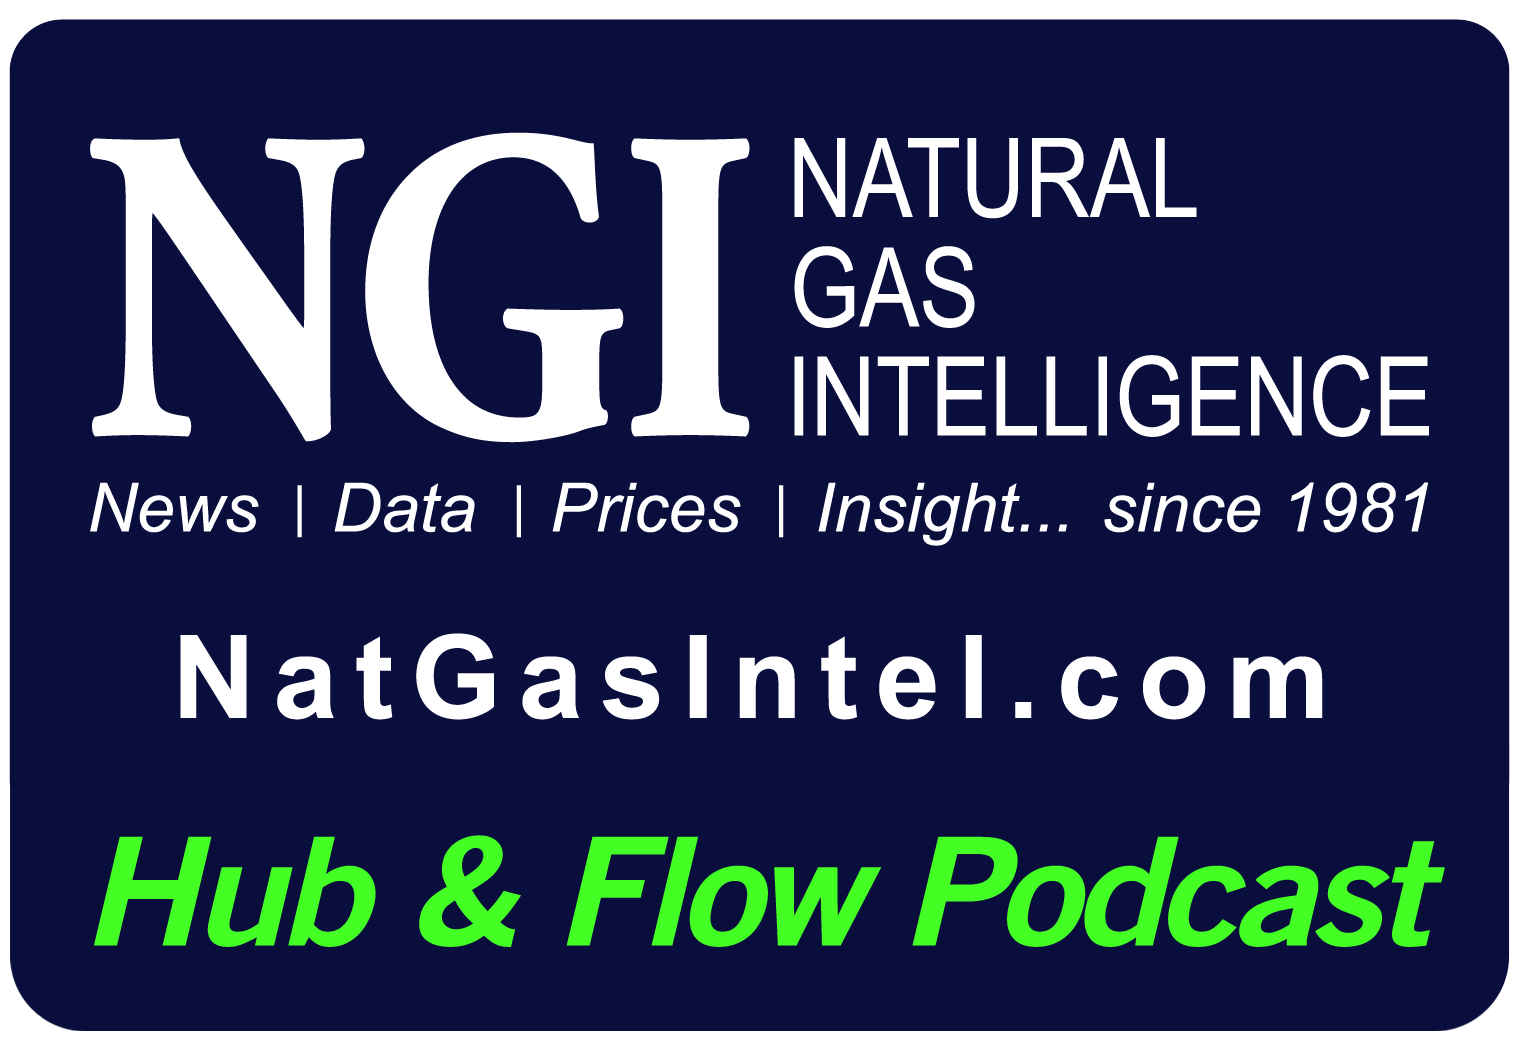 Hub and Flow podcast